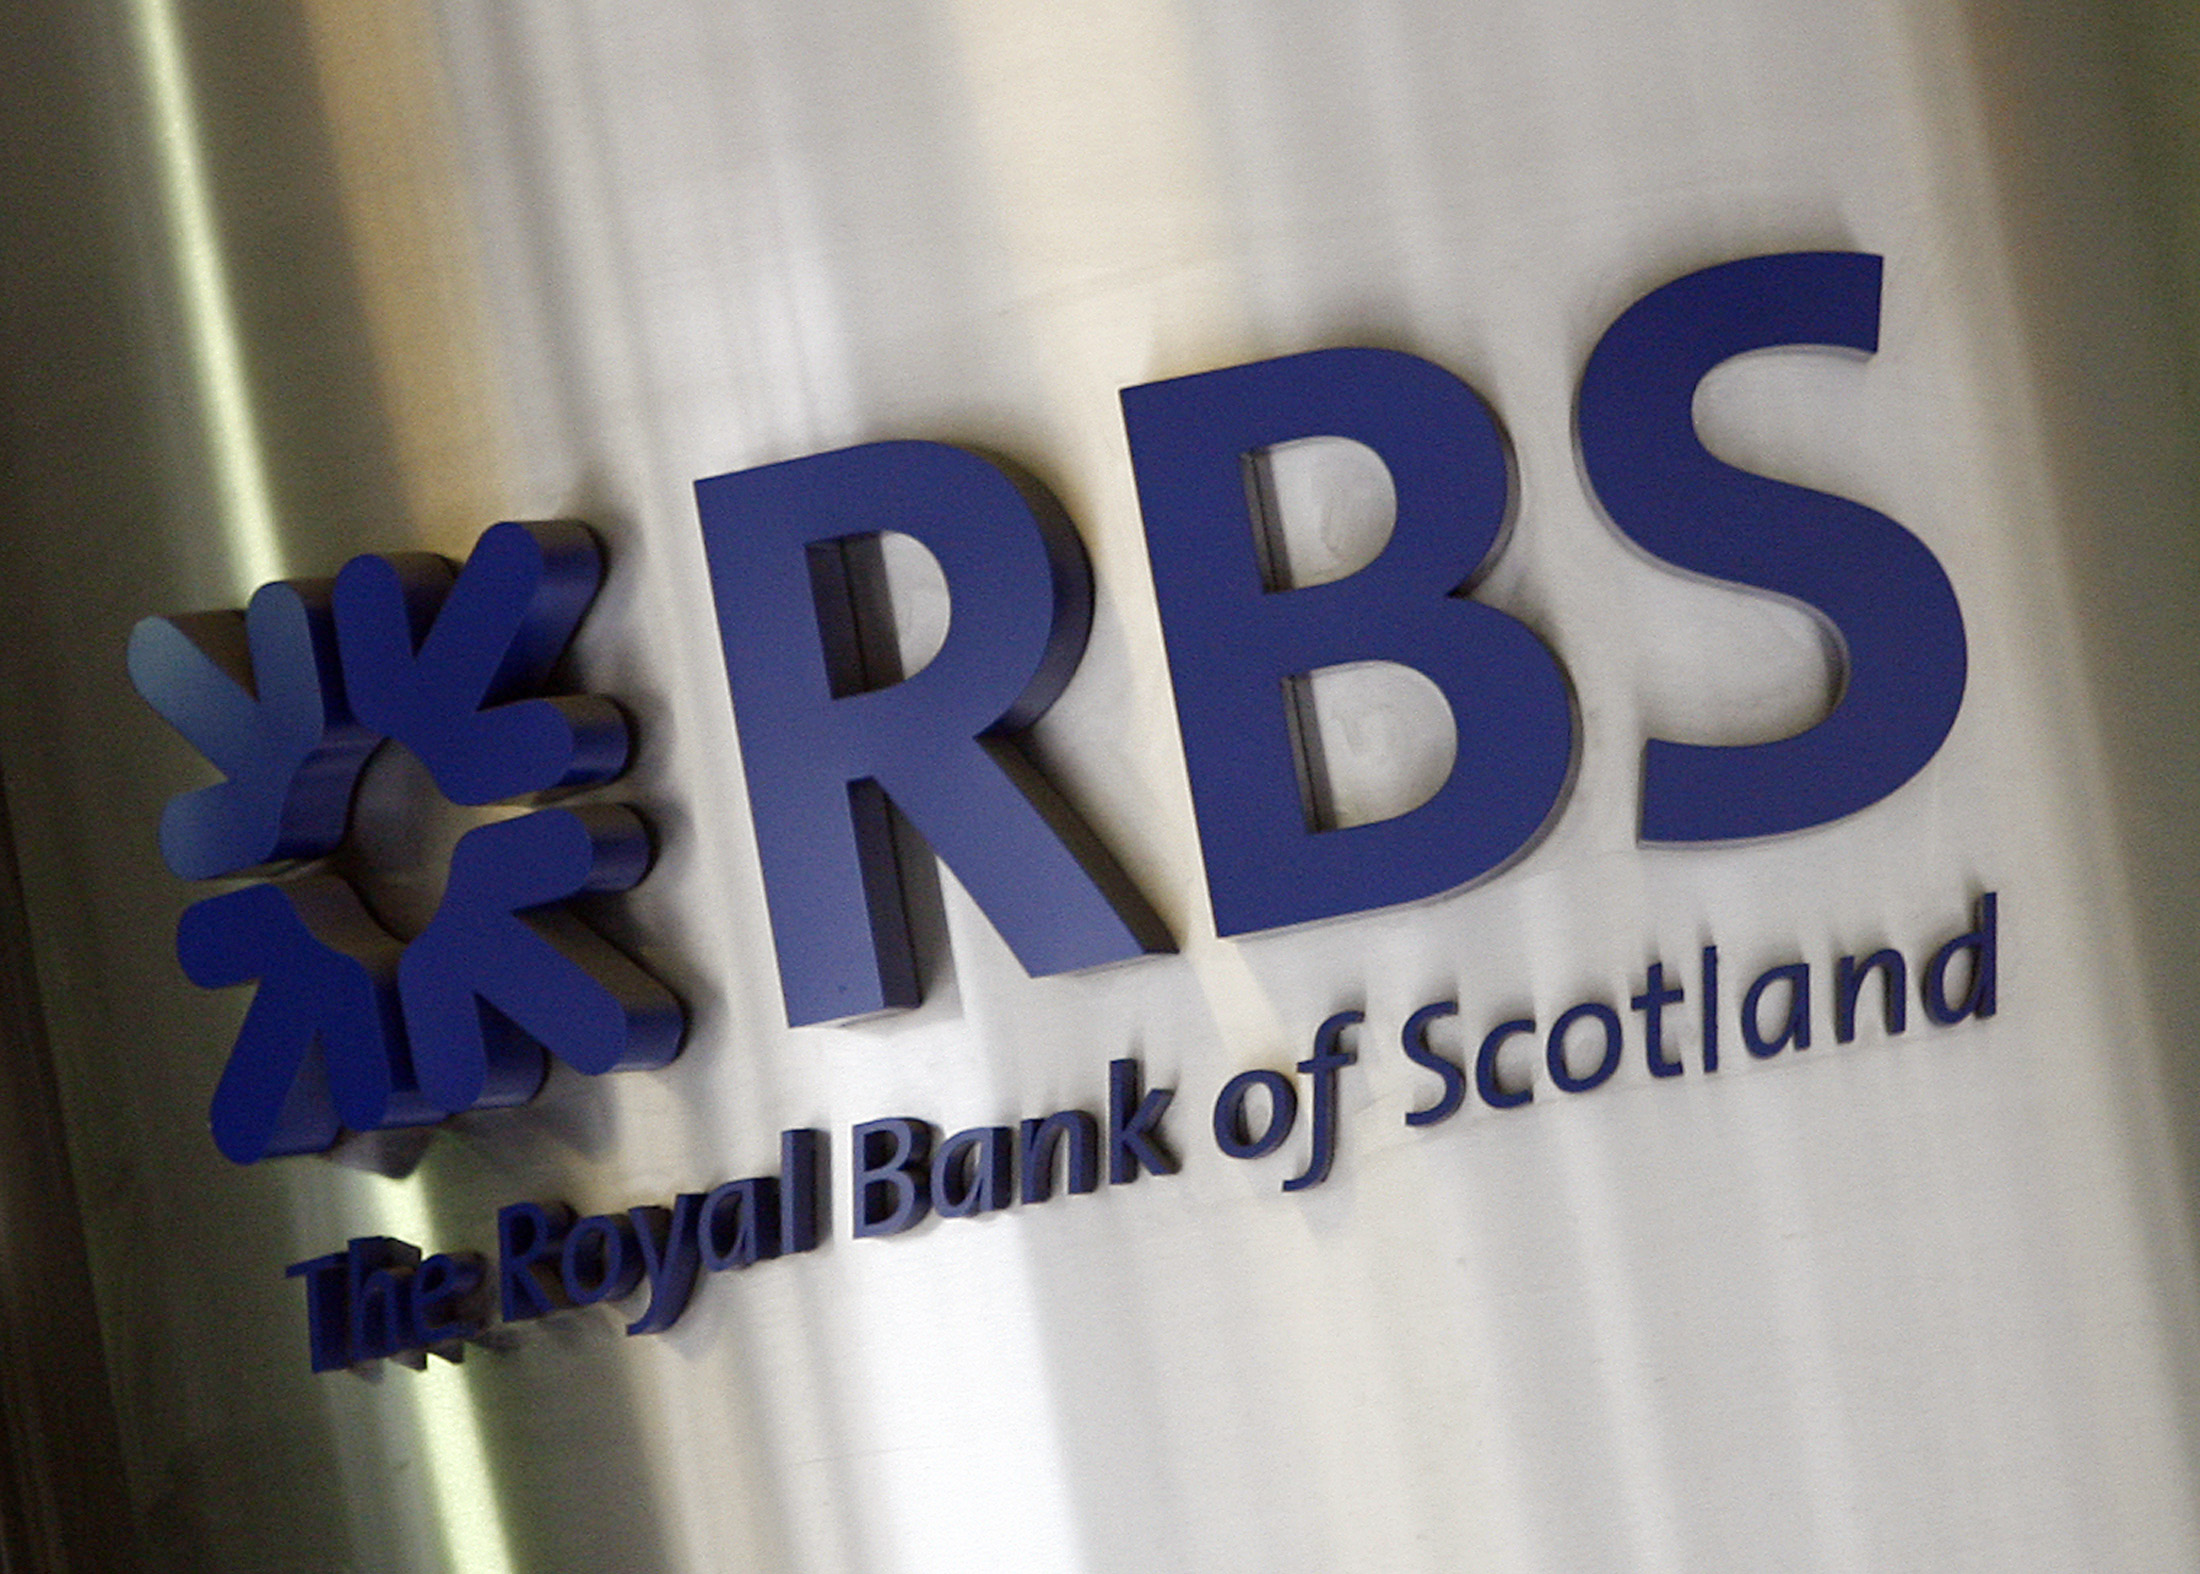 The Royal Bank of Scotland's logo is seen in central London May 29, 2007. A consortium led by Royal Bank of Scotland unveiled a 71.1 billion euro ($95.7 billion) bid for ABN AMRO that included its disputed U.S. bank and a higher cash component than indicated. REUTERS/Stephen Hird  (BRITAIN)